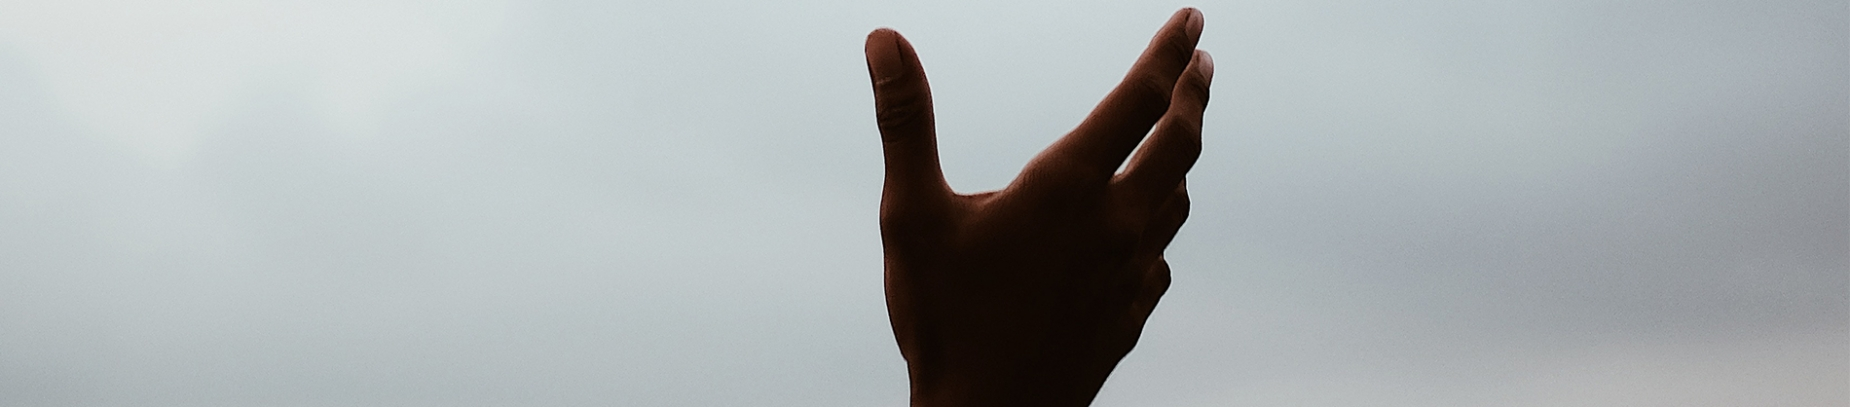 A persons hand open towards the sky